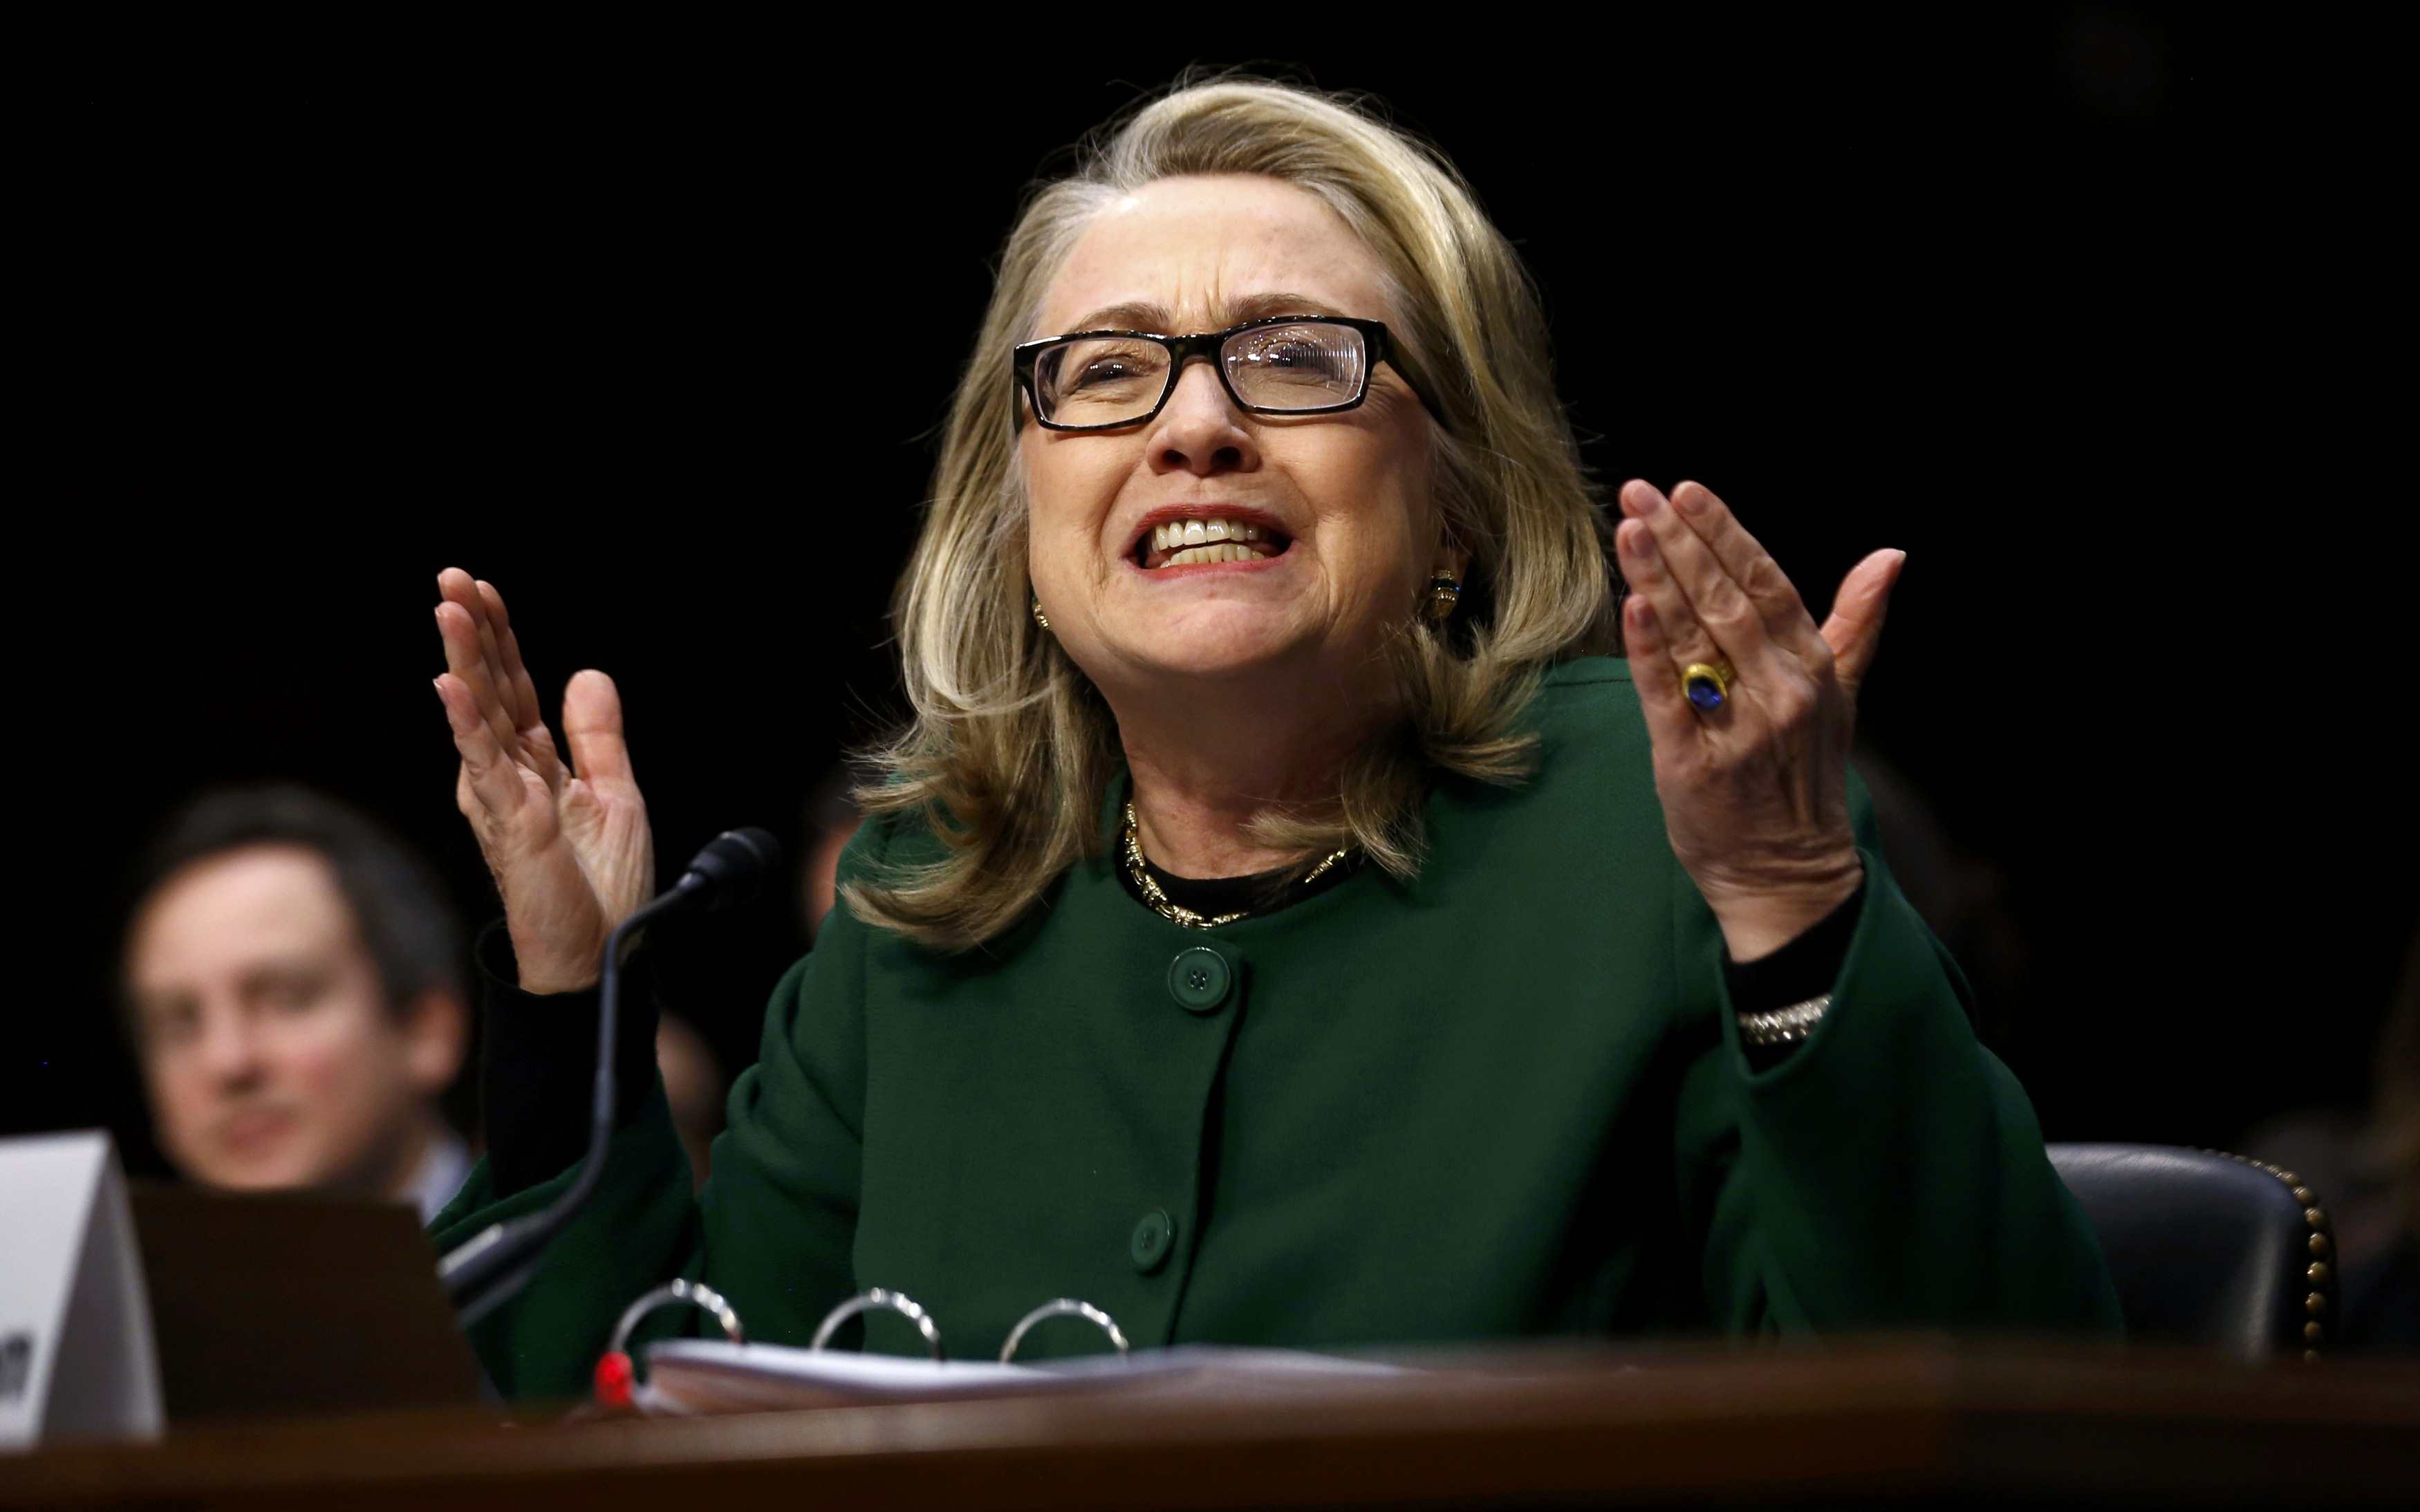 Secretary of State Hillary Clinton responds forcefully to intense questioning on the September attack on the U.S. compound in Benghazi, Libya (Jason Reed/Reuters)